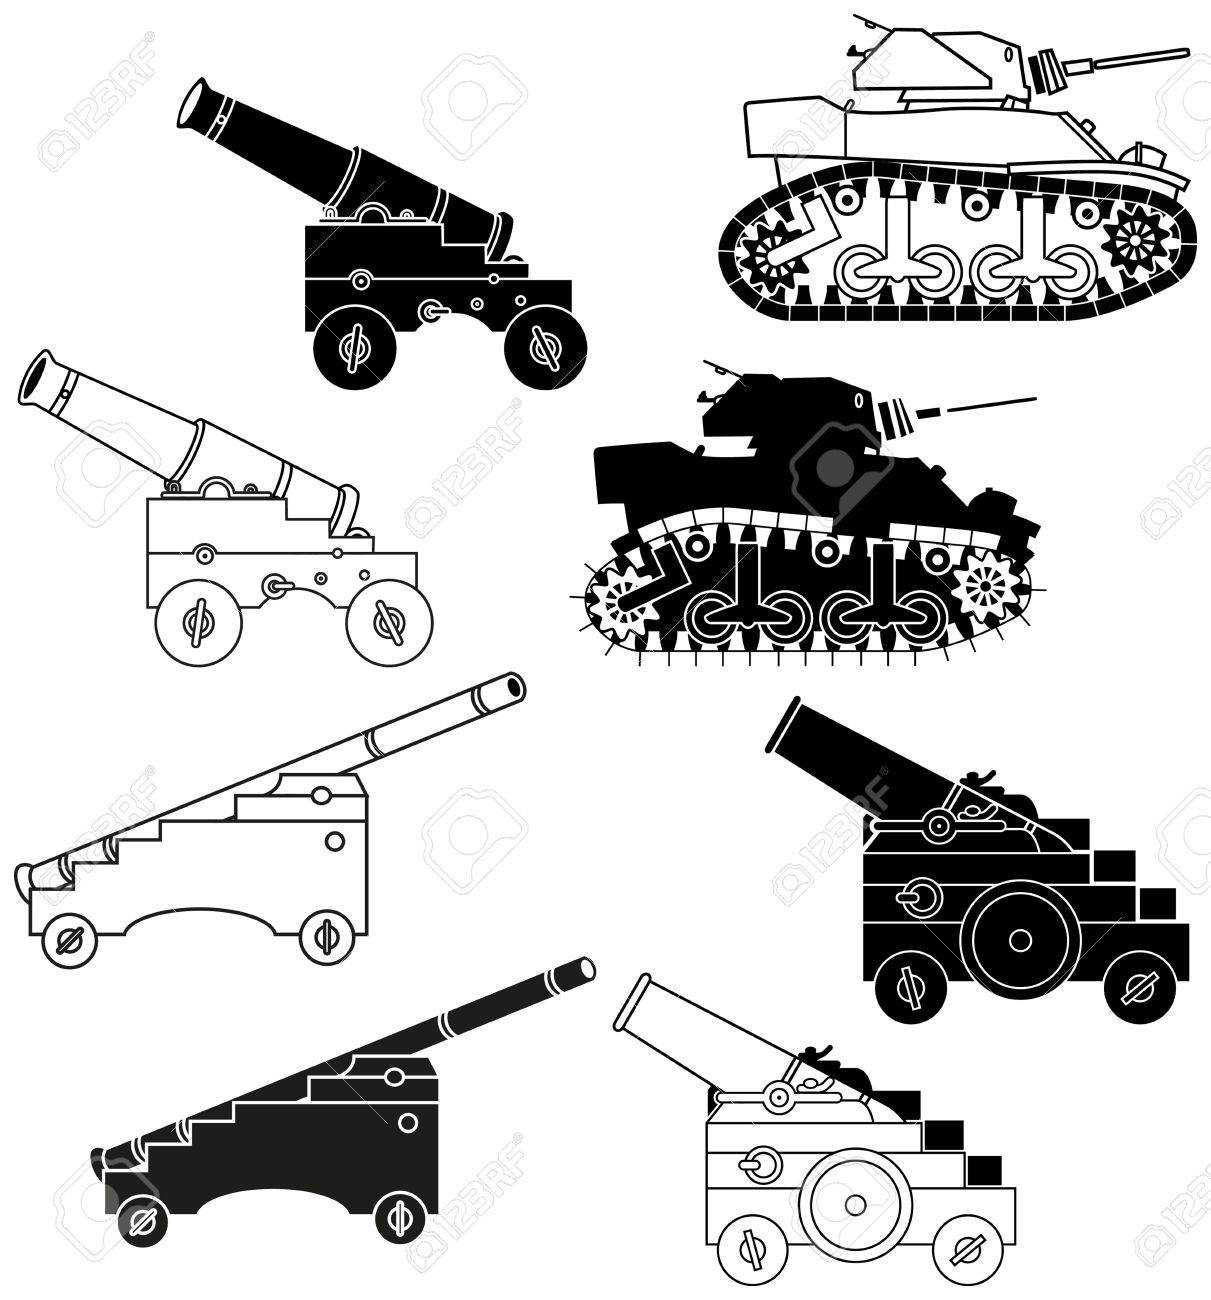 black and white cannon and tanks. Silhouettes and outlines Stock Vector - 14660604